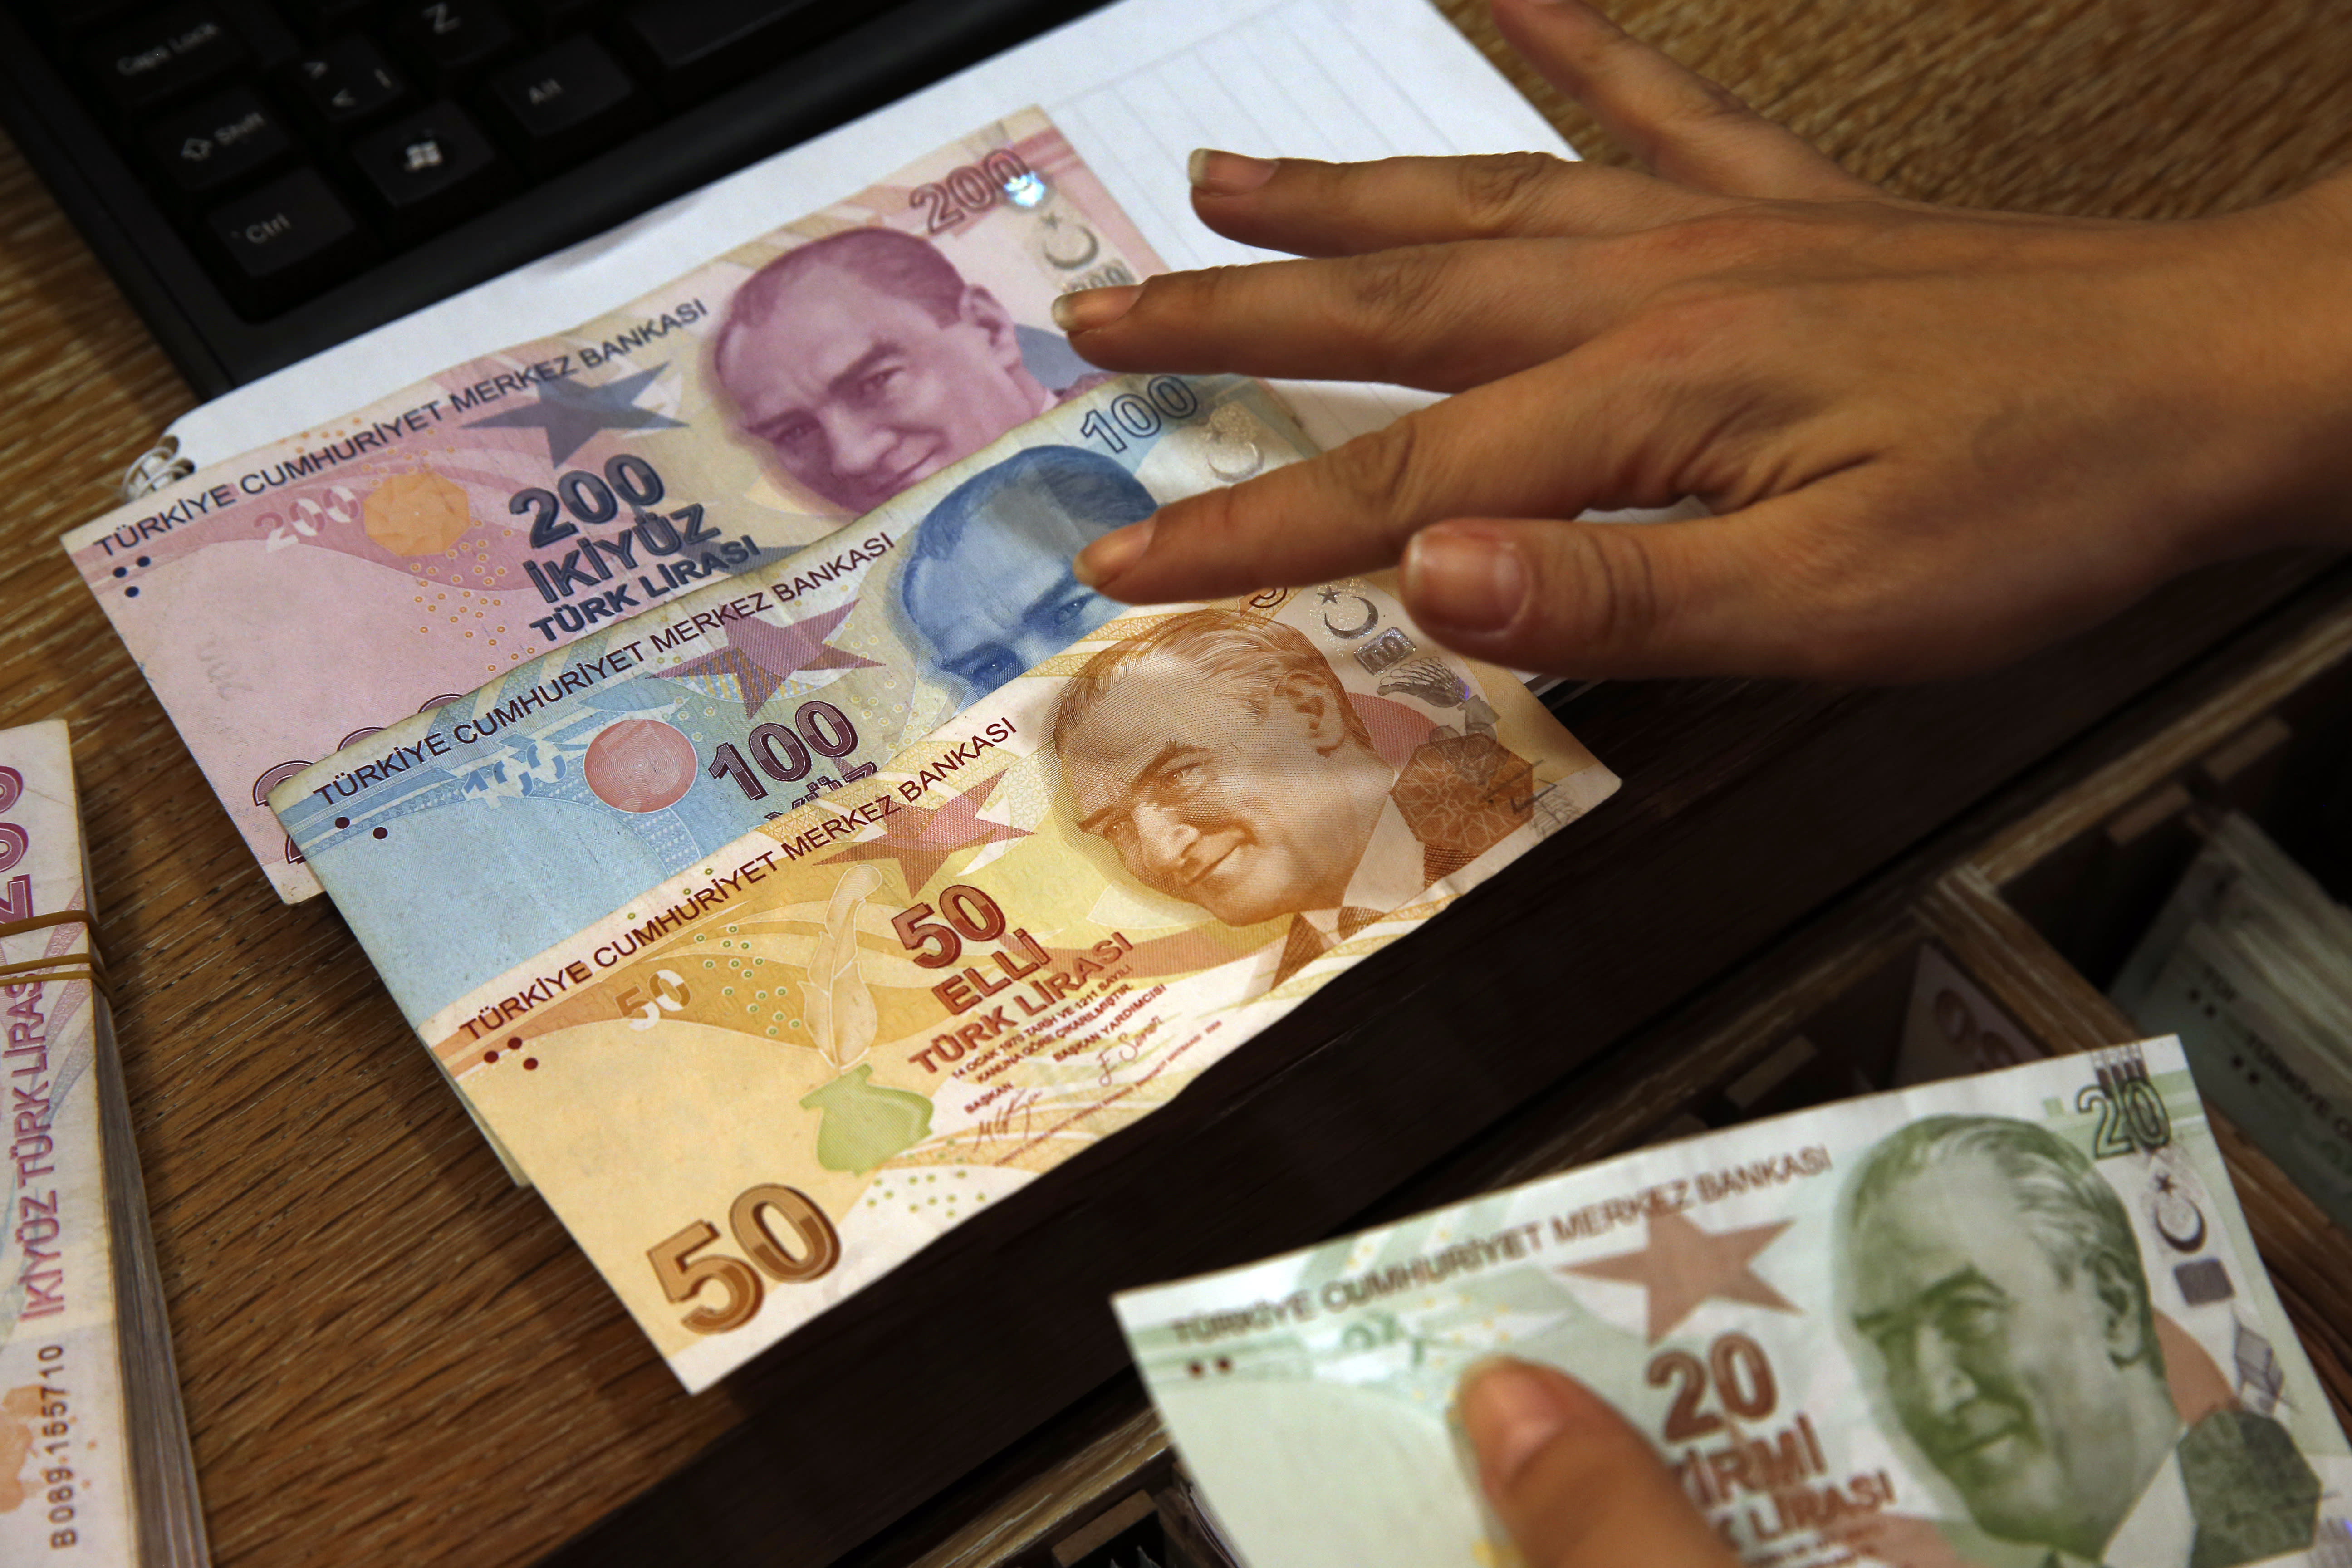 FILE- In this Wednesday, Aug. 15, 2018, file photo a worker at a currency exchange shop exhibits Turkish lira banknotes bearing pictures of modern Turkey's founder Mustafa Kemal Ataturk, in Istanbul. Investors have been pulling out of Turkey's markets, sending its stock market and currency plunging. That's making debt that Turkish companies owe in dollar terms even more expensive to pay back, which only further weakens the country's financial system. (AP Photo/Lefteris Pitarakis, File)